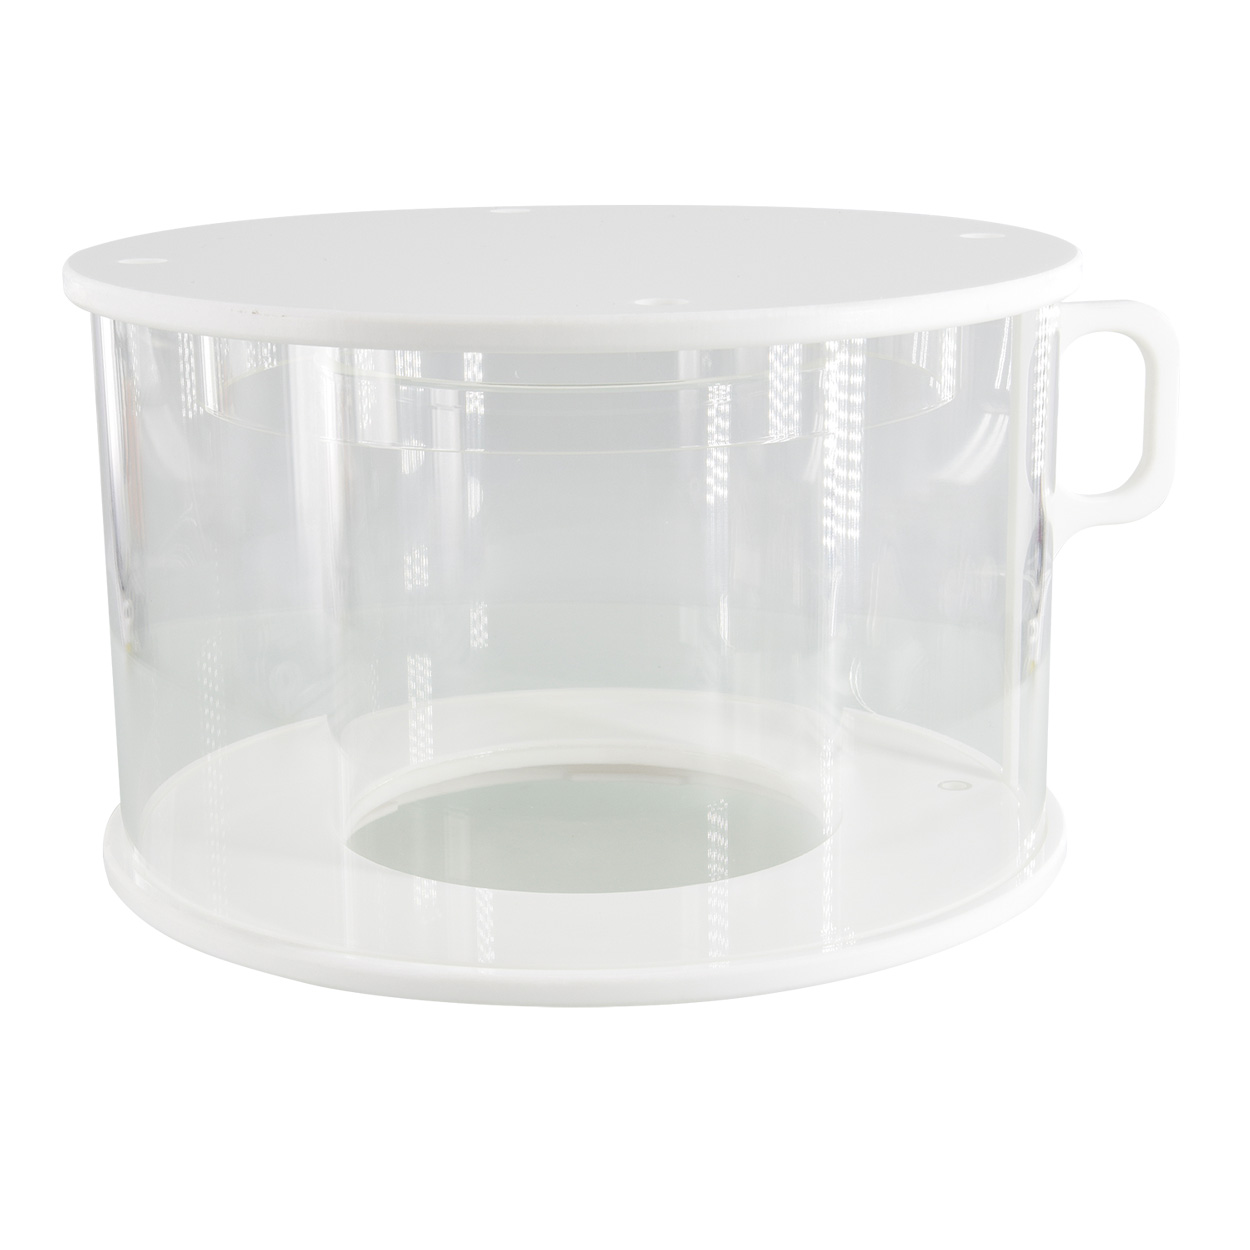 Seapora Replacement Collection Cup for the Pro-5 Protein Skimmer 38338